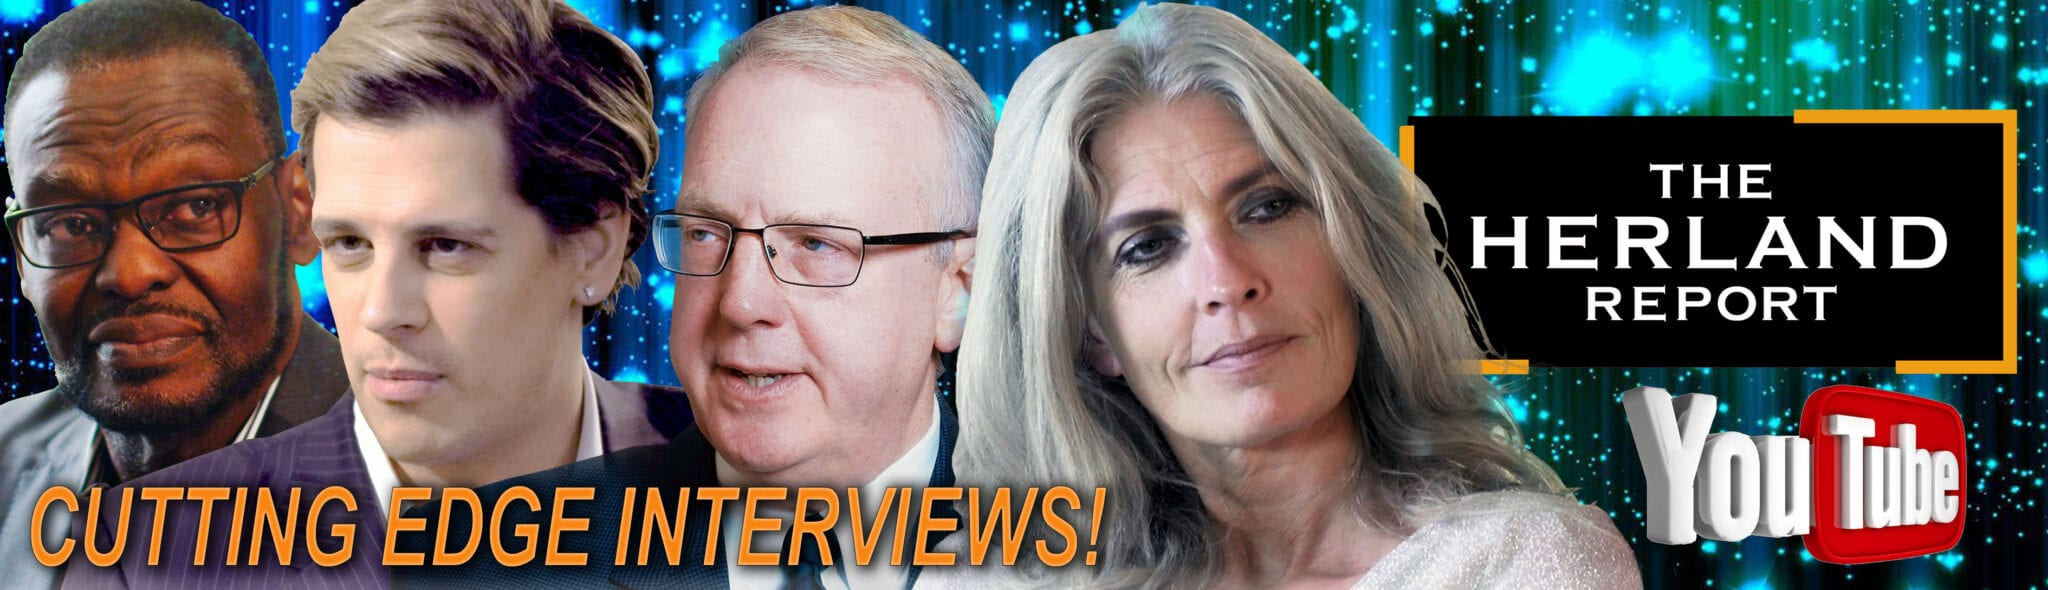 If you sow Hatred, you reap Hatred: George Floyd criminal Subscribe to Herland Report TV with leading intellectuals